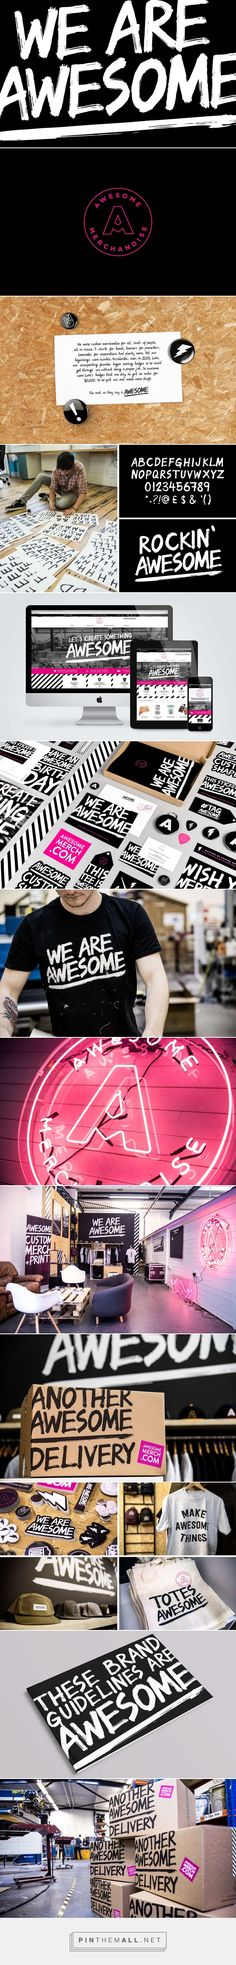 Awesome Custom Merchandise Factory Branding by Robot Food | Fivestar Branding Agency – Design and Branding Agency & Curated Inspiration Gallery